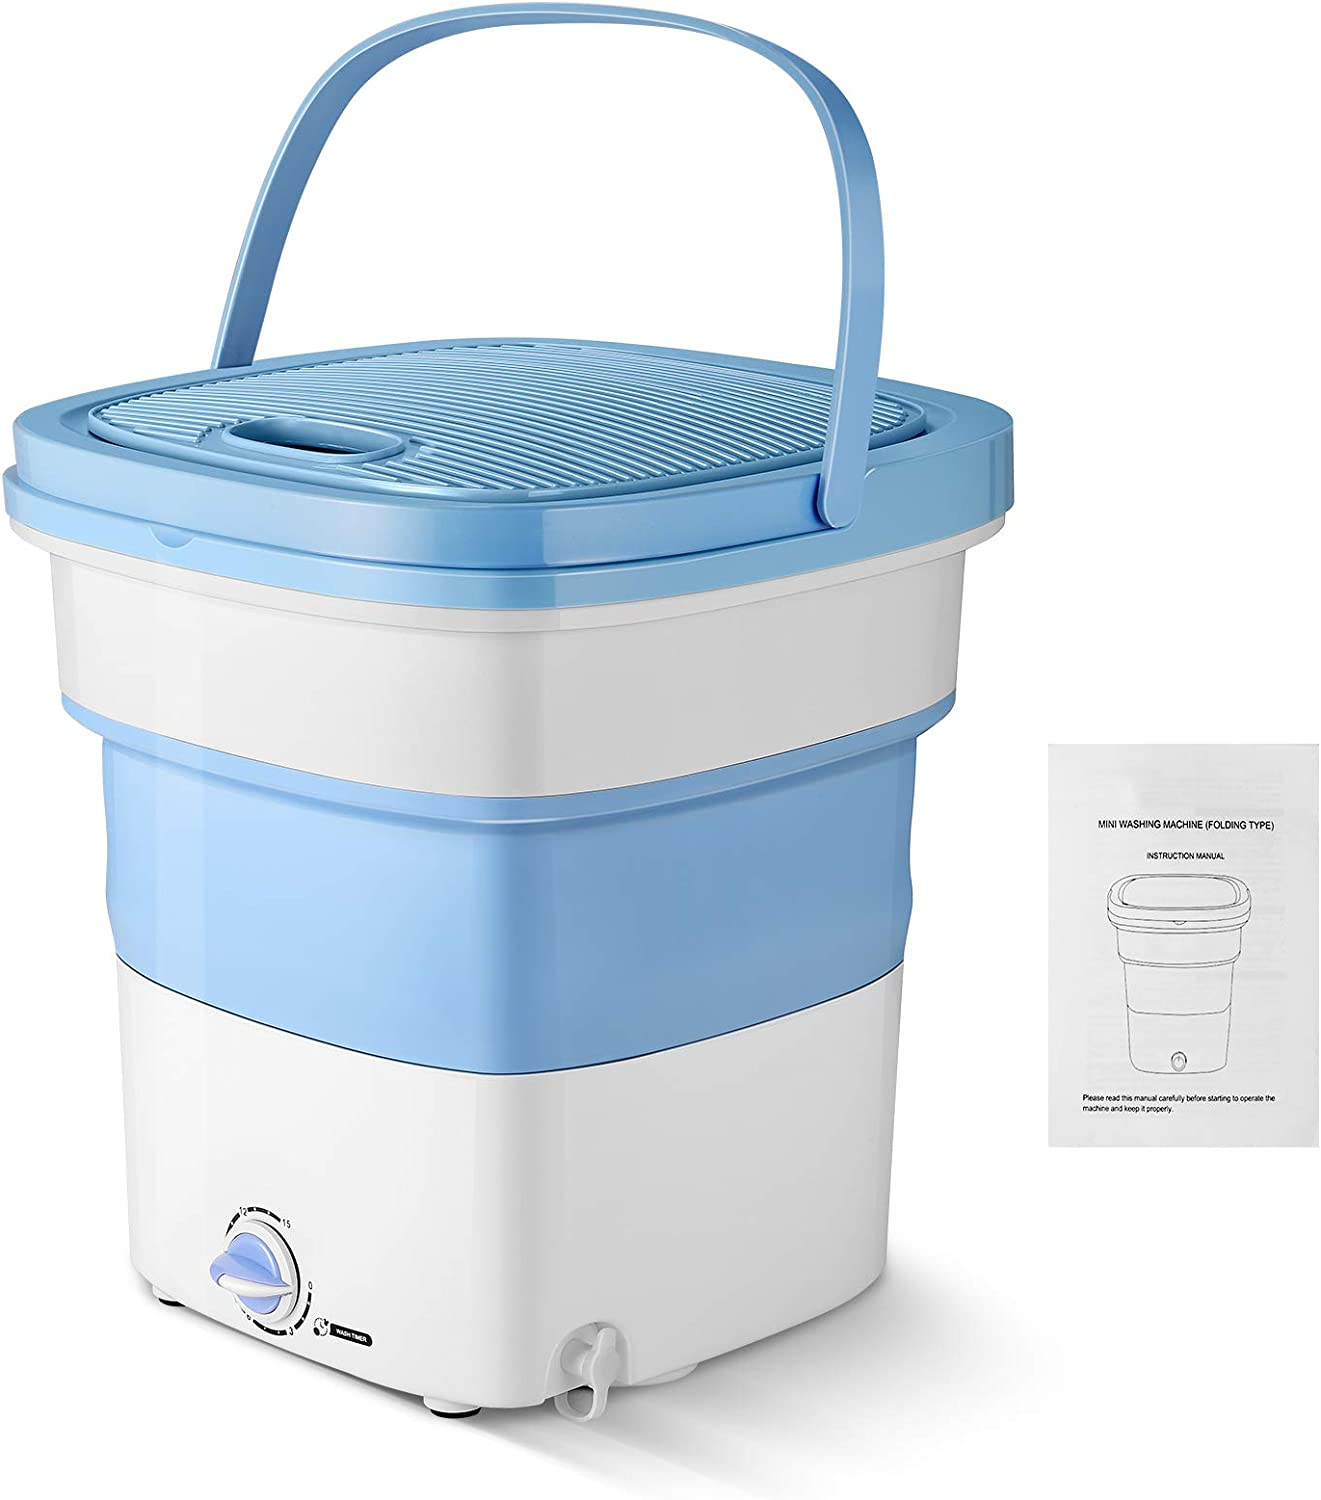 Magic Folding Washing Machine Quick Gear Washing Machine Portable Foldable Collapsible Countertop Automatic Personal Turbine Washer for Camping Travelling Apartments Dorms RV (300W, Blue)